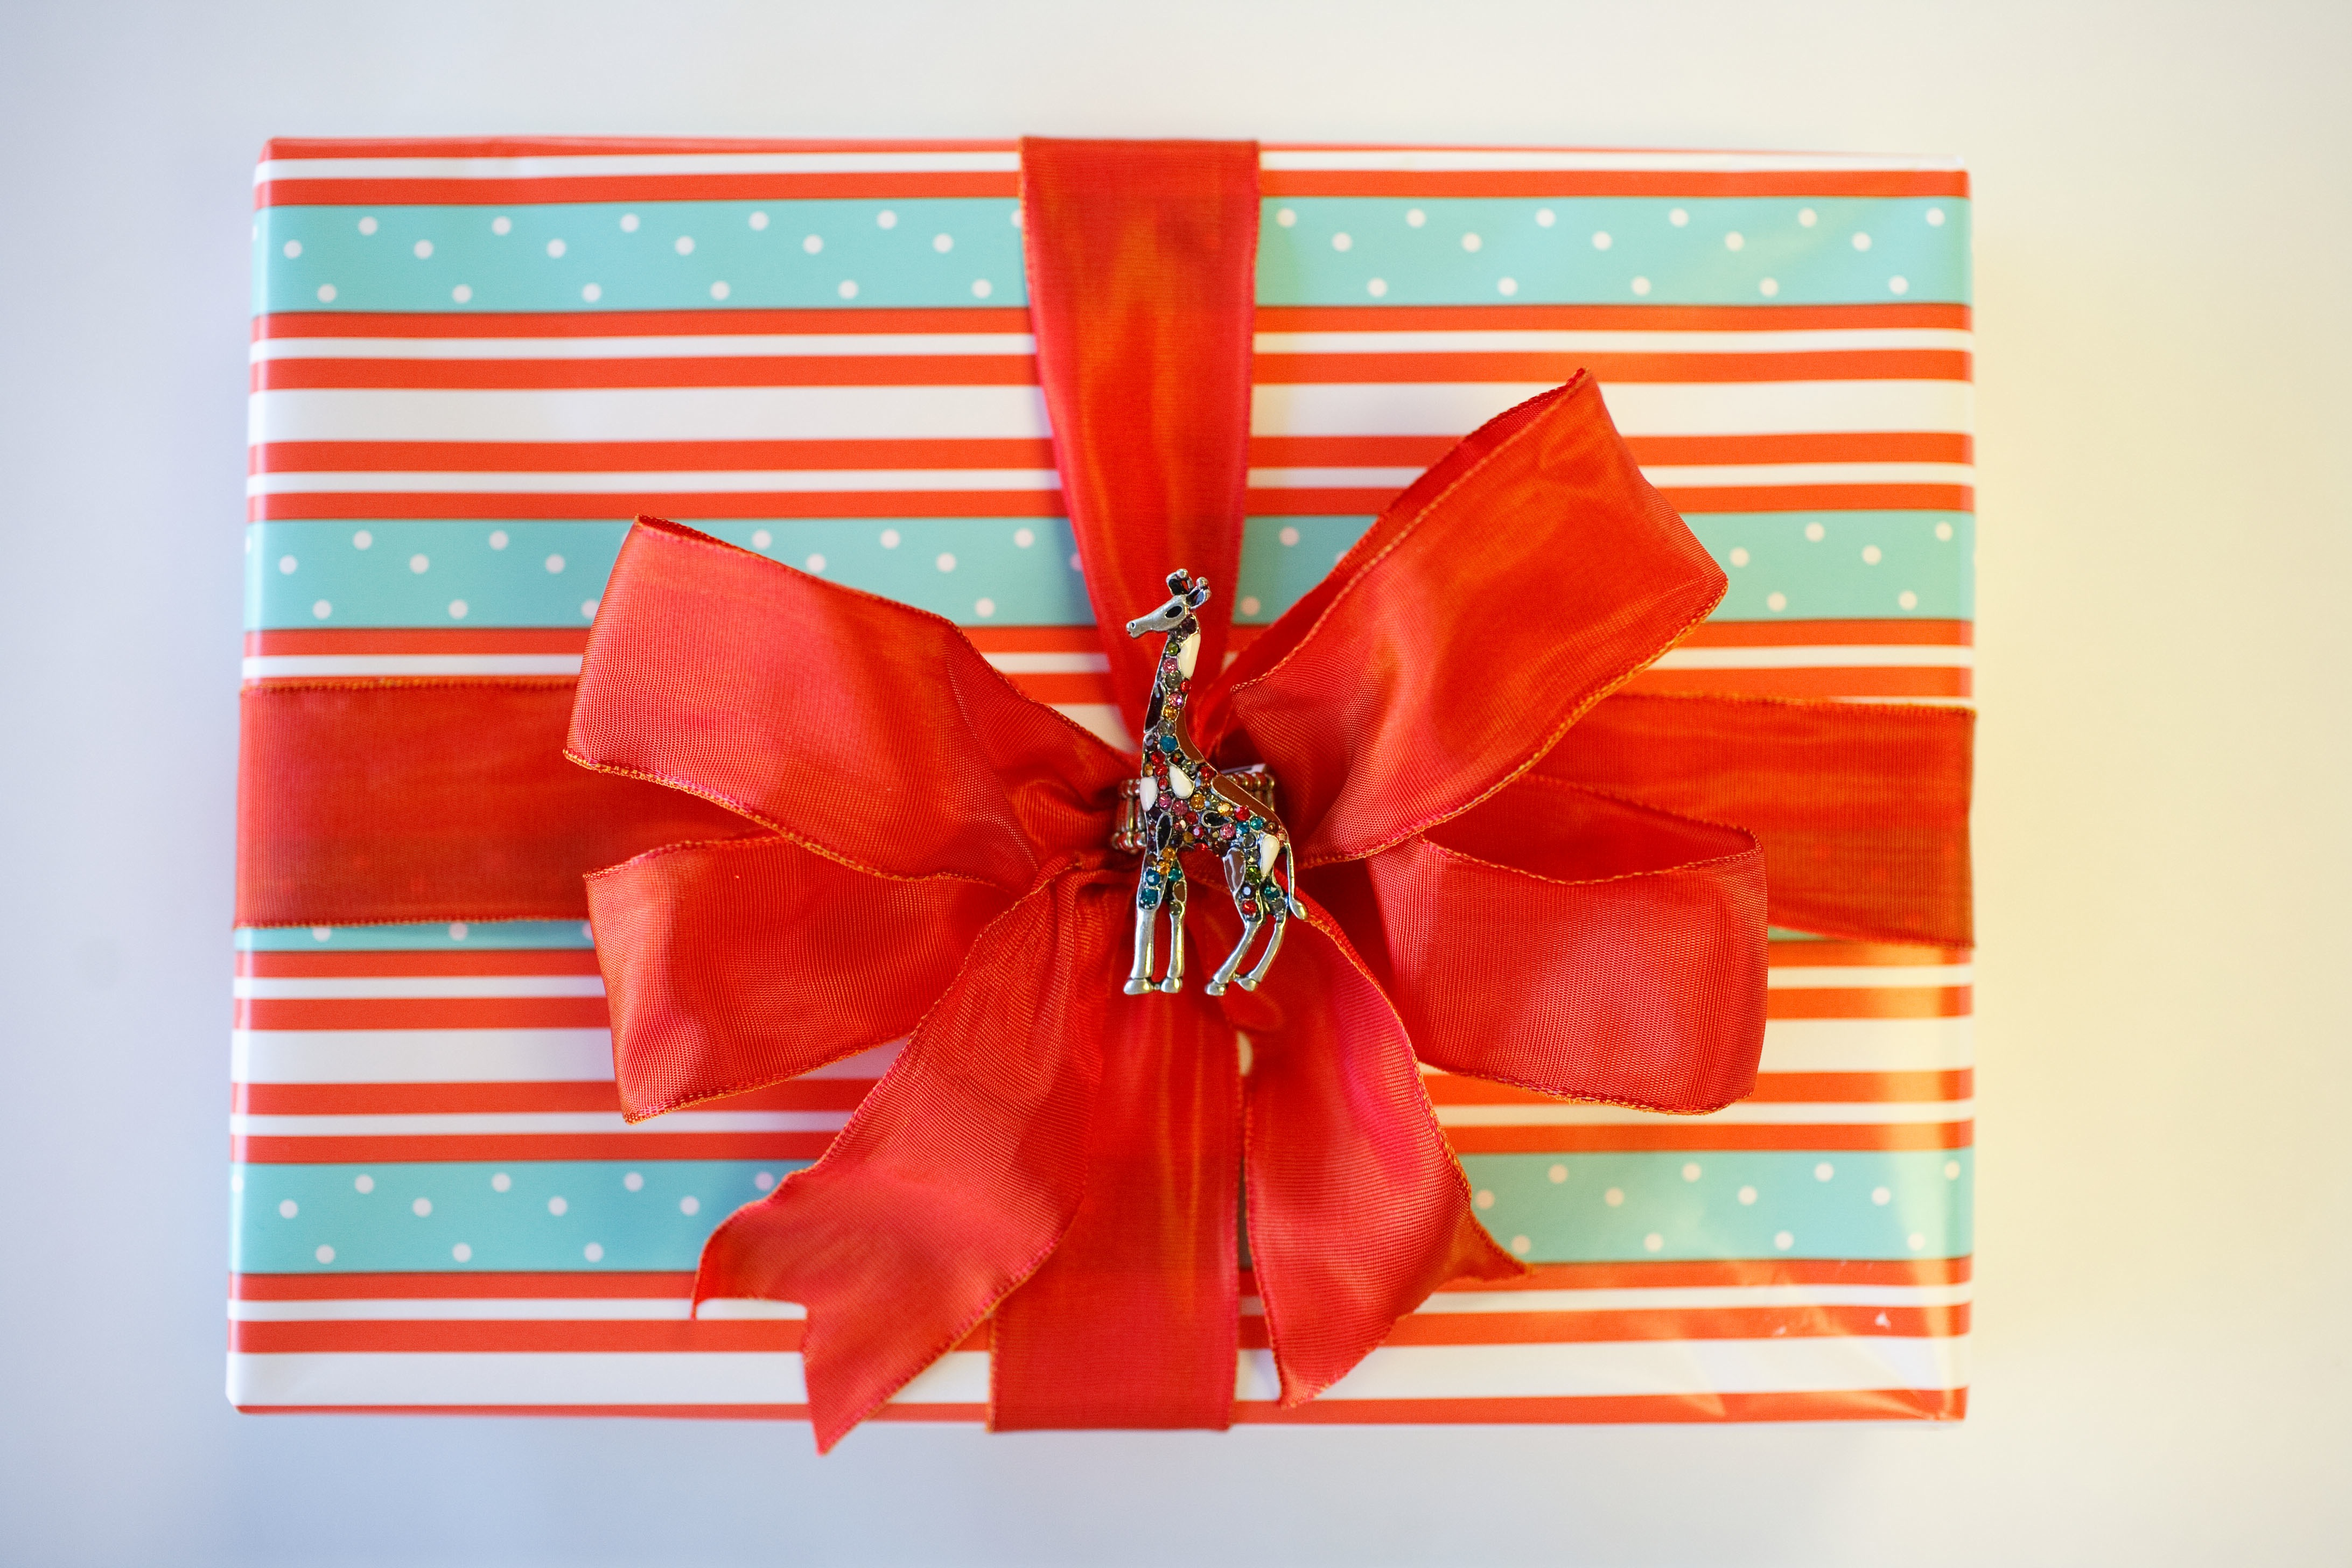 Striped Giftwrap with Orange bow and giraffe detail